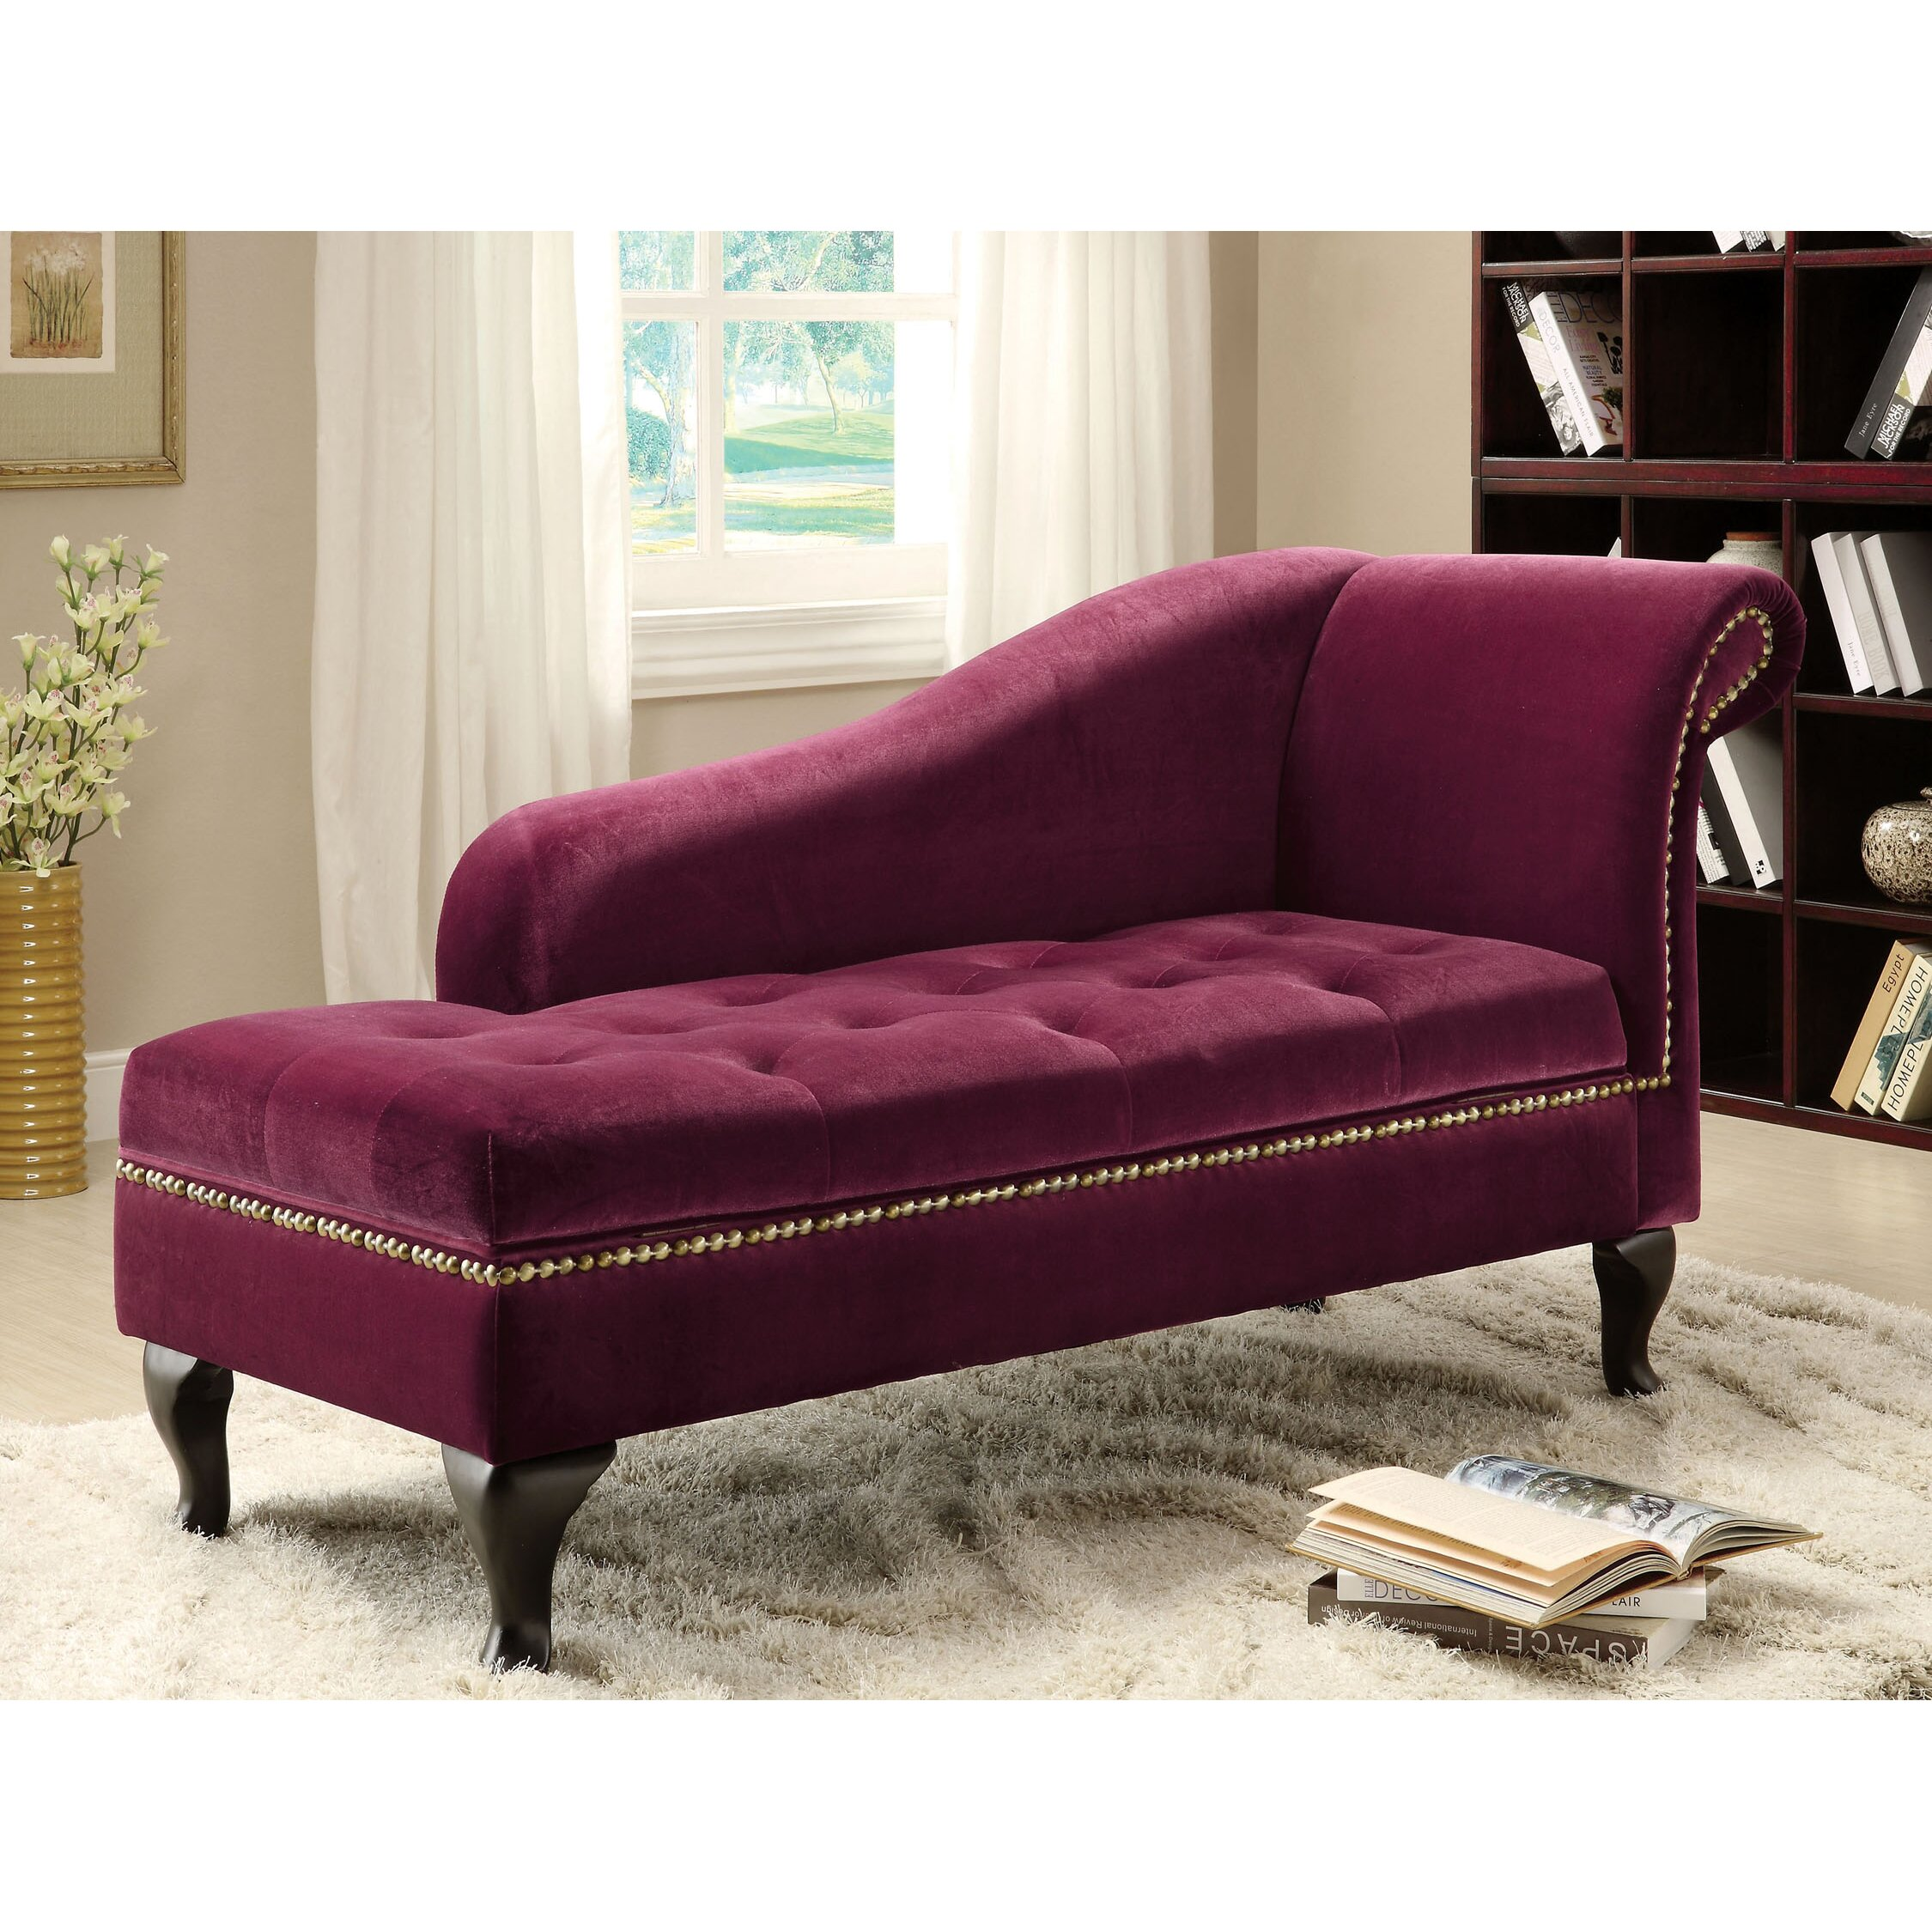 Hokku designs coral chaise lounge with storage reviews for Burgundy chaise lounge